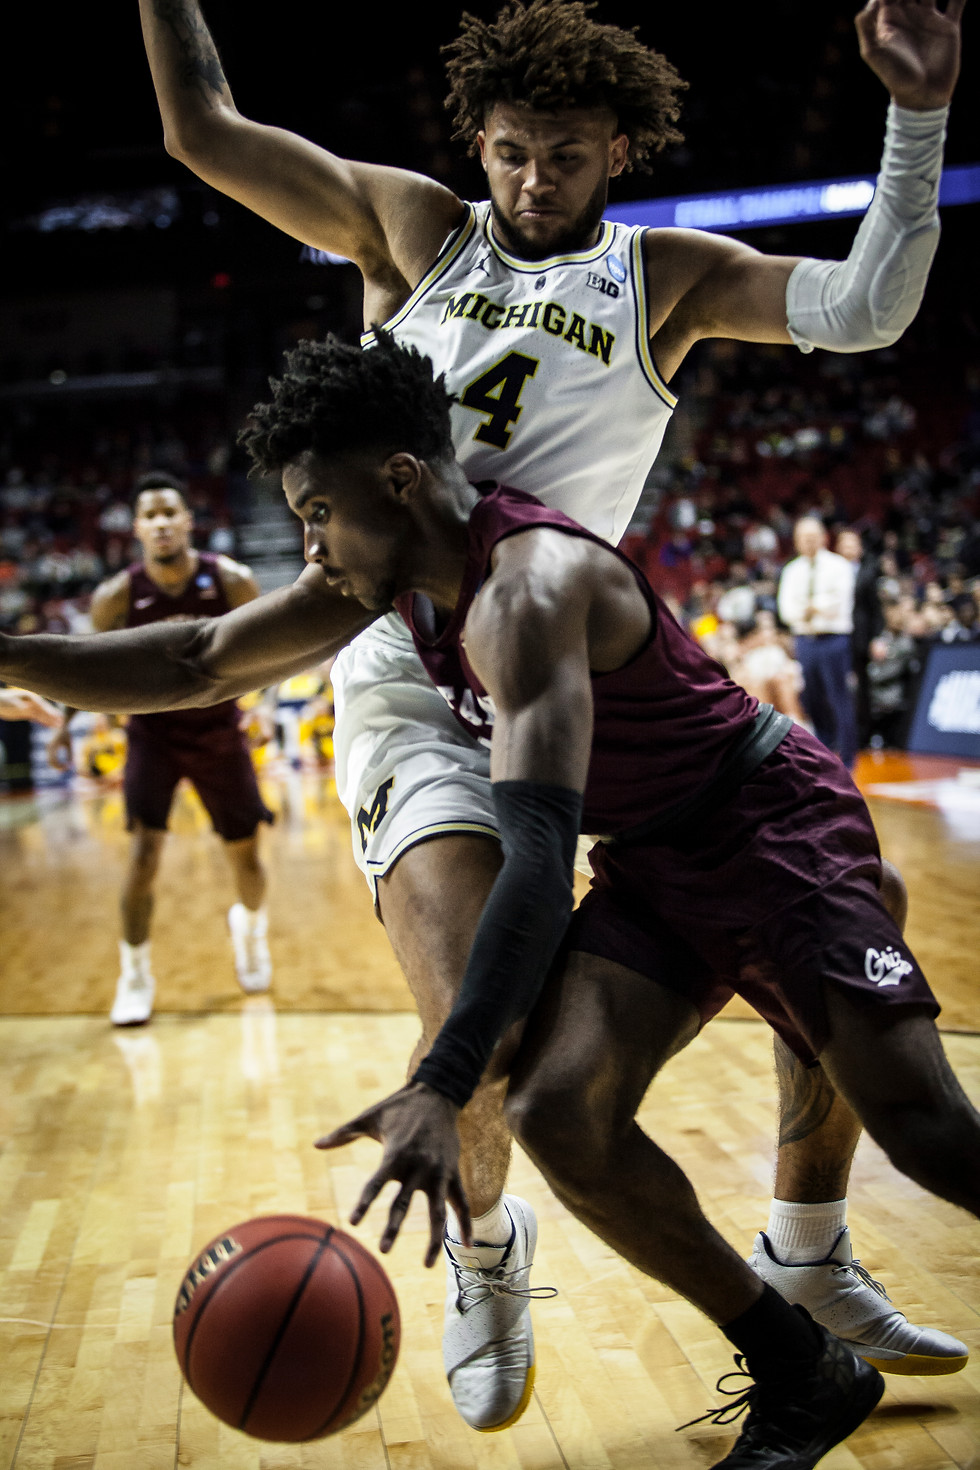 University of Montana senior guard Michael Oguine attempts to push past a University of Michigan sophomore forward Isaiah Livers during the second half of the game. This was Oguine's last game as a Griz- he finishes his career at the University of Montana ranked seventh in points scored (1,647).